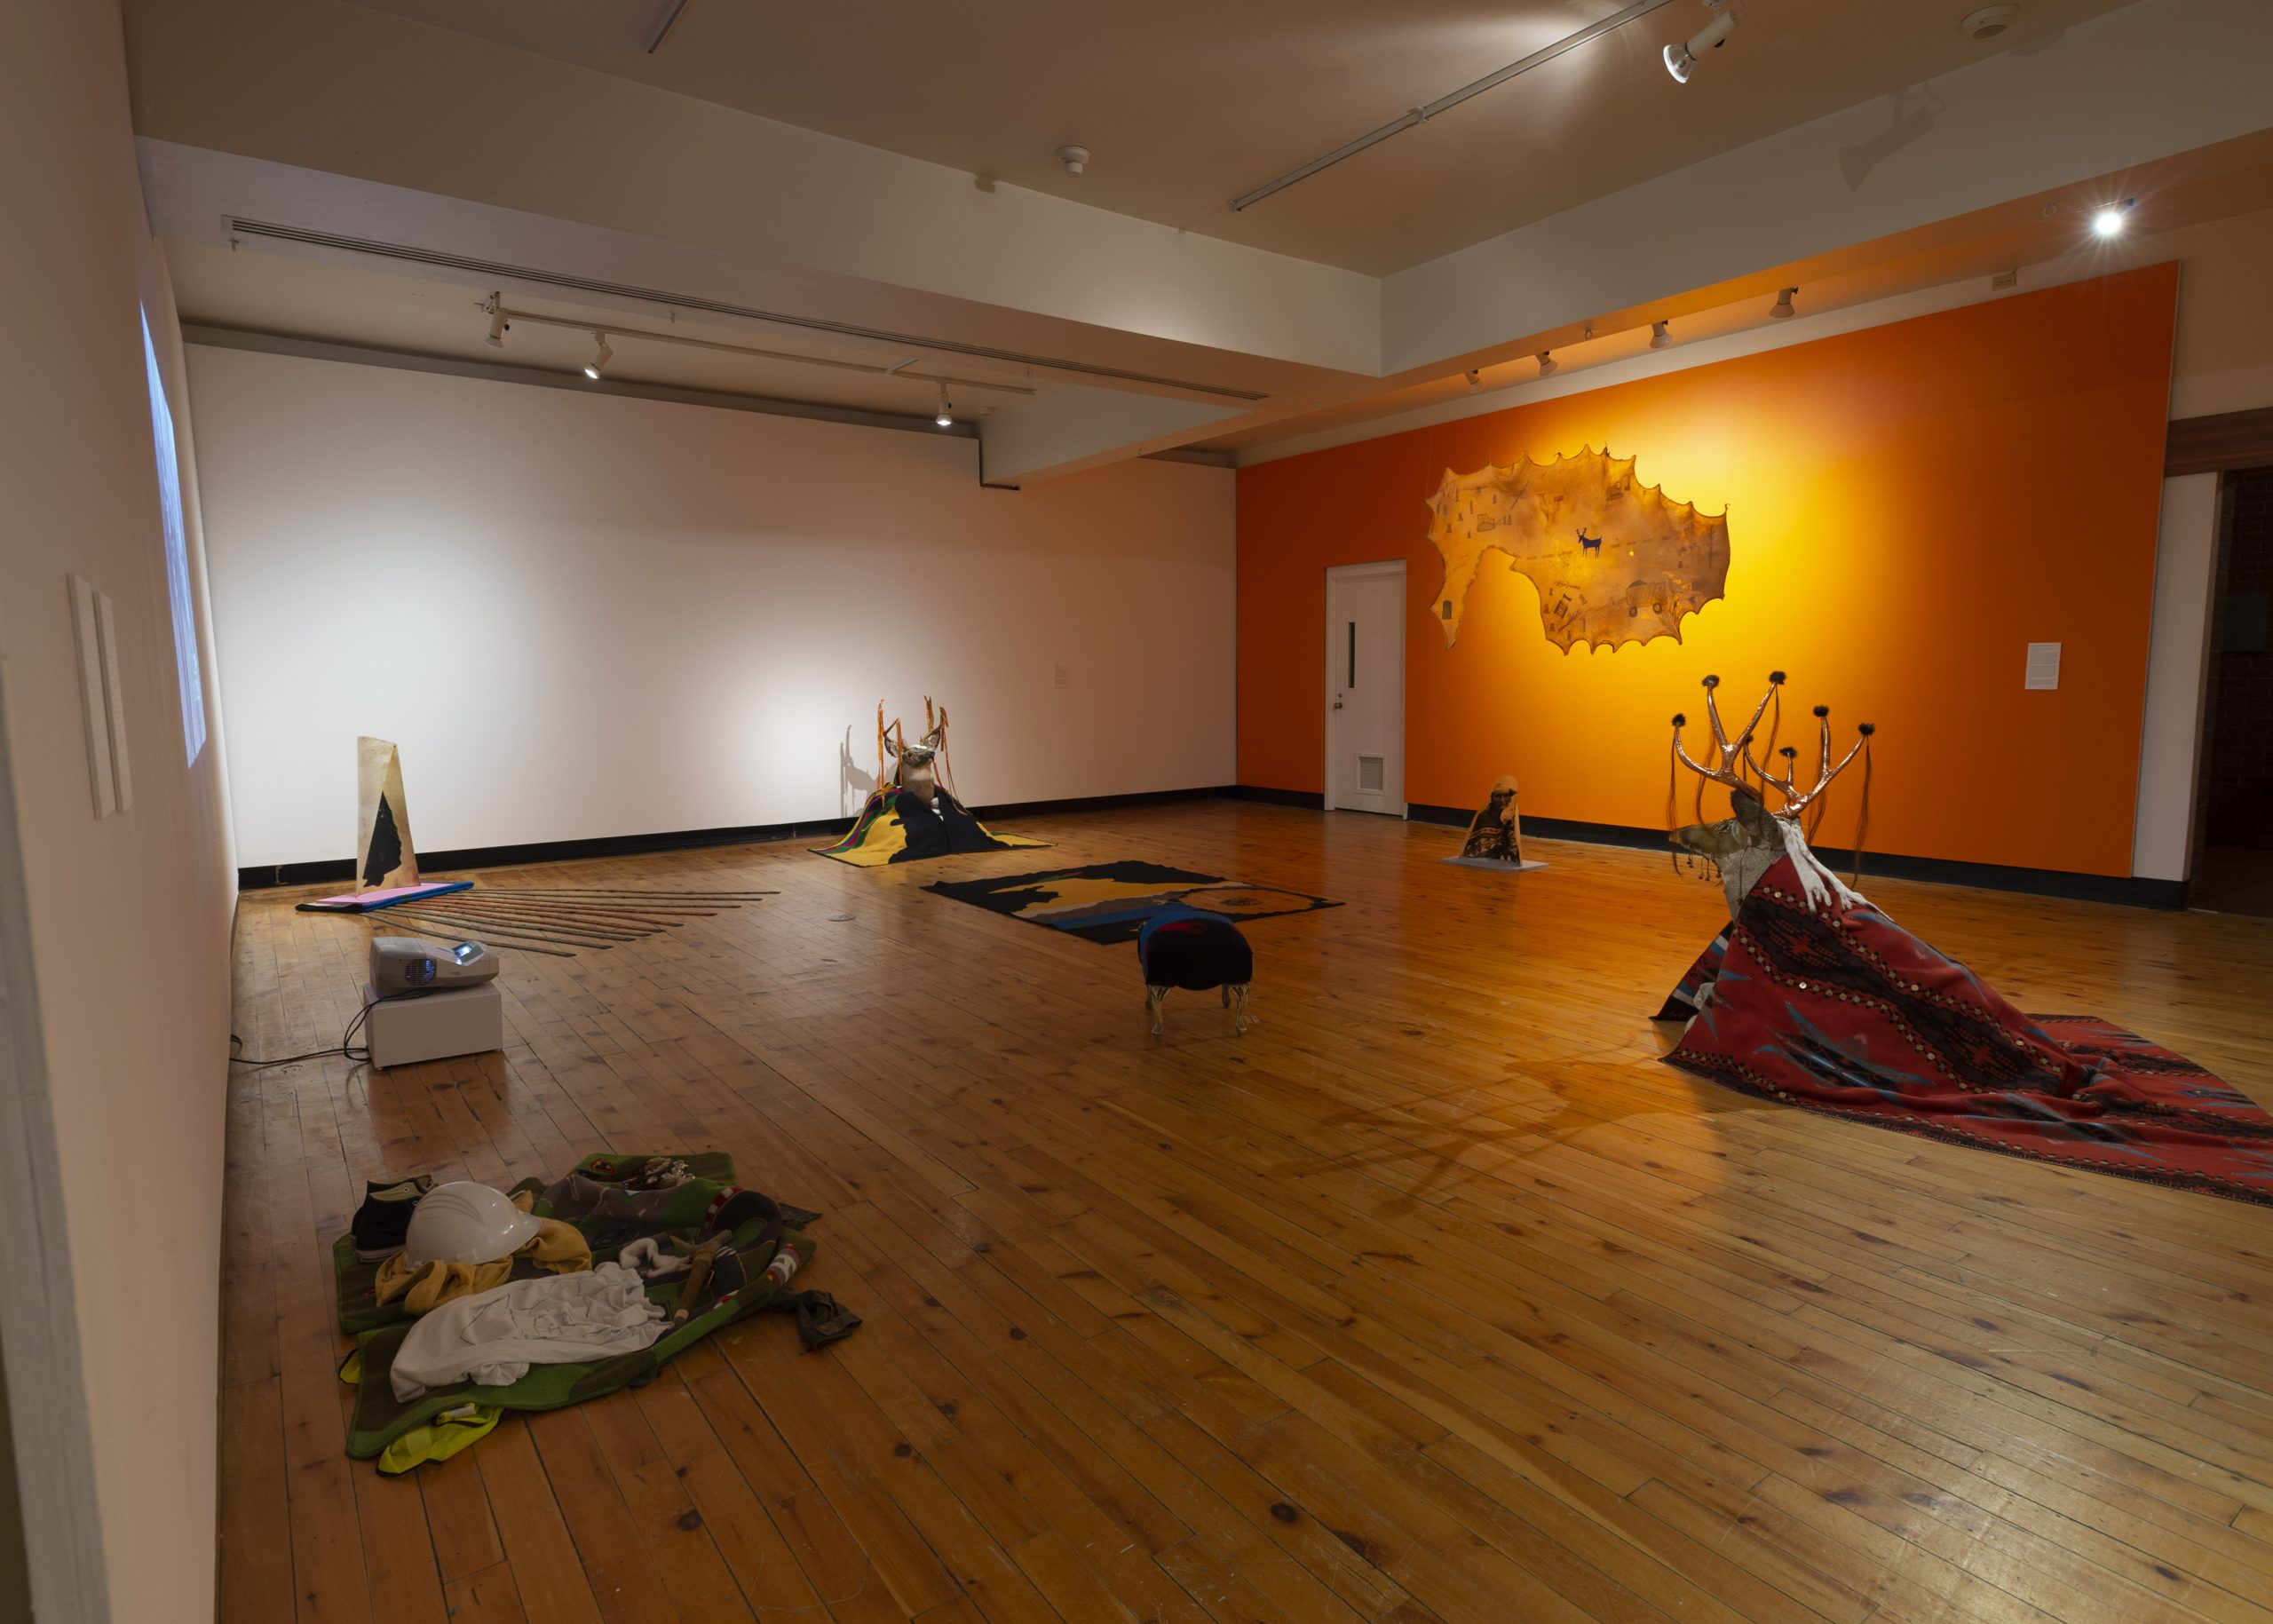 Installation views of Tina Guyani | Deer Road